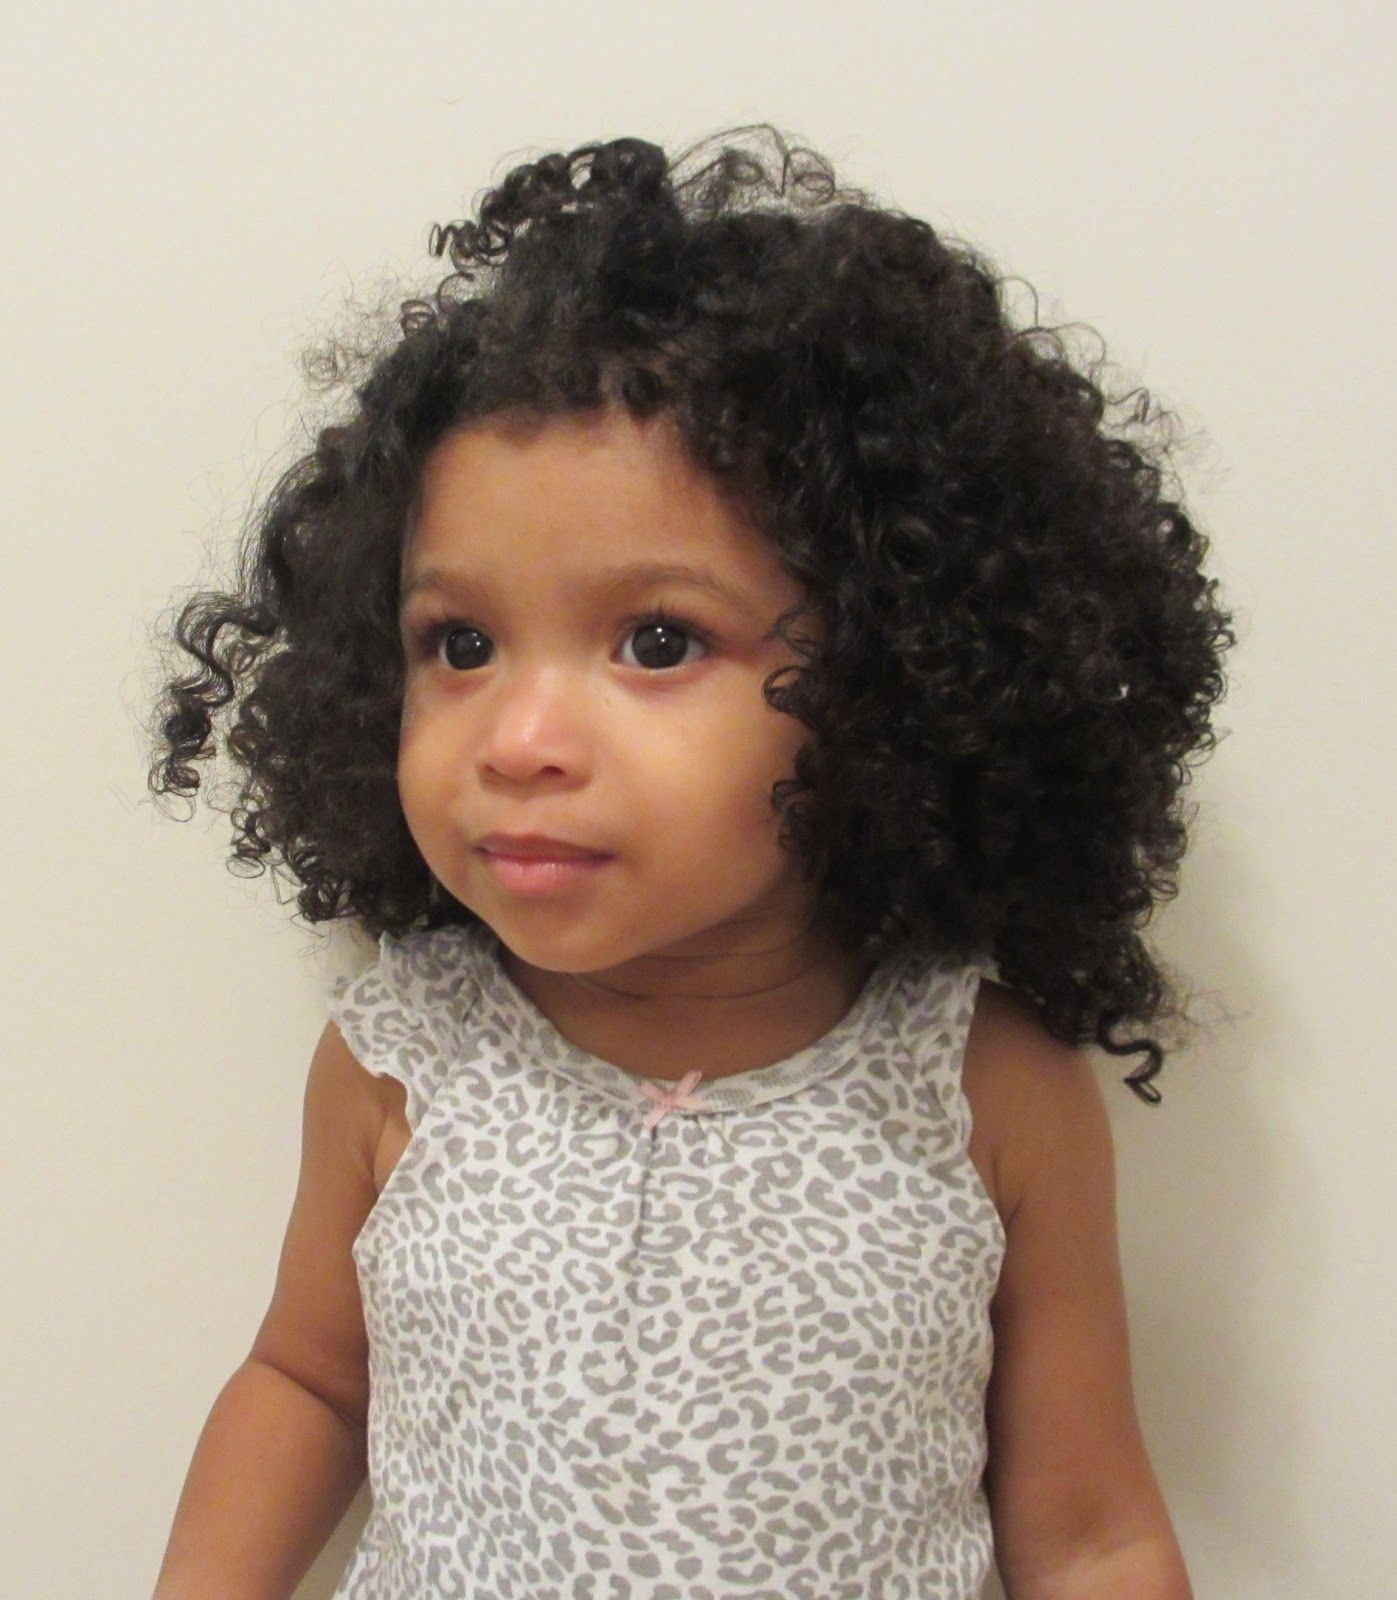 Cute Mixed Baby Girls With Curly Hair Mixed little boys with curly